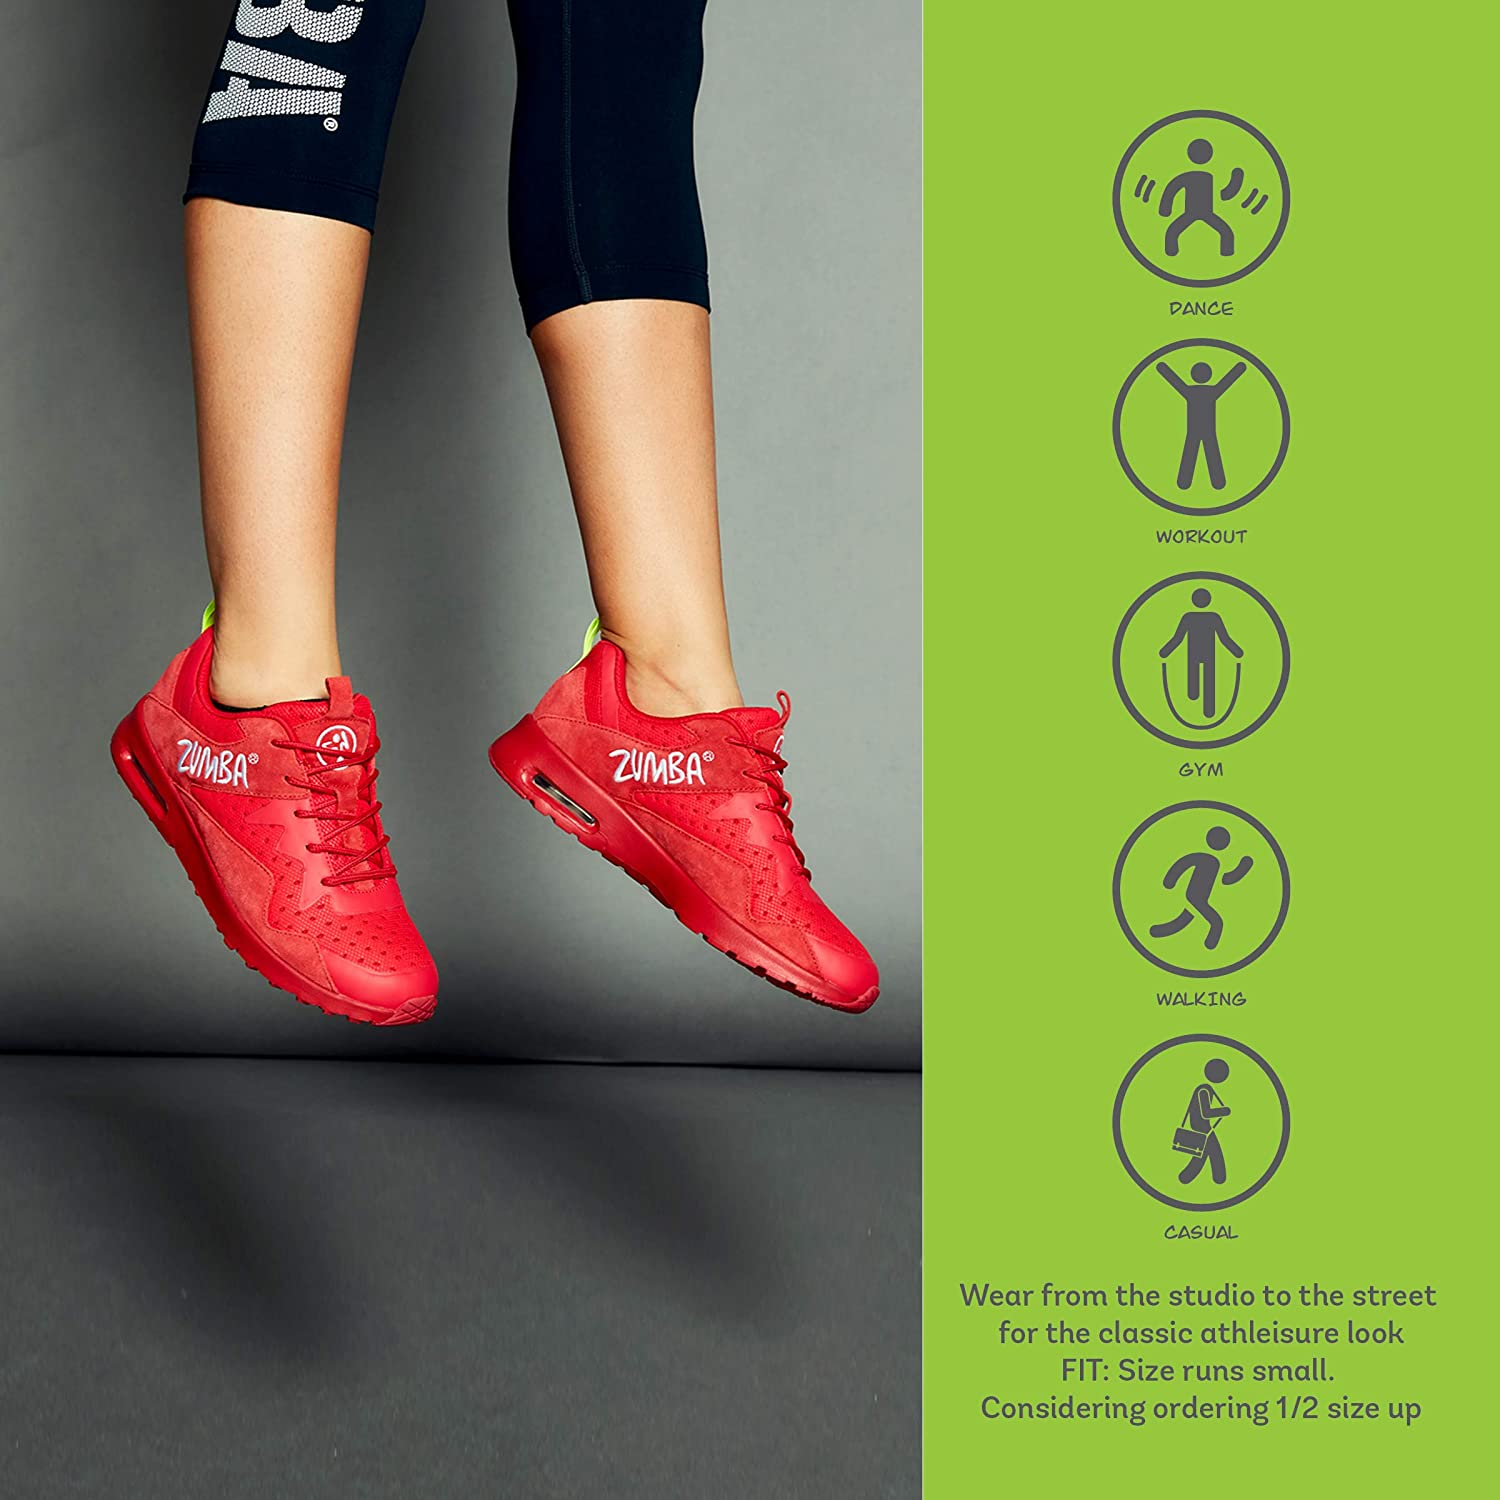 Zumba Athletic Air Classic Gym Fitness Sneakers Dance Workout Shoes for Women Red 1 jUtc7t